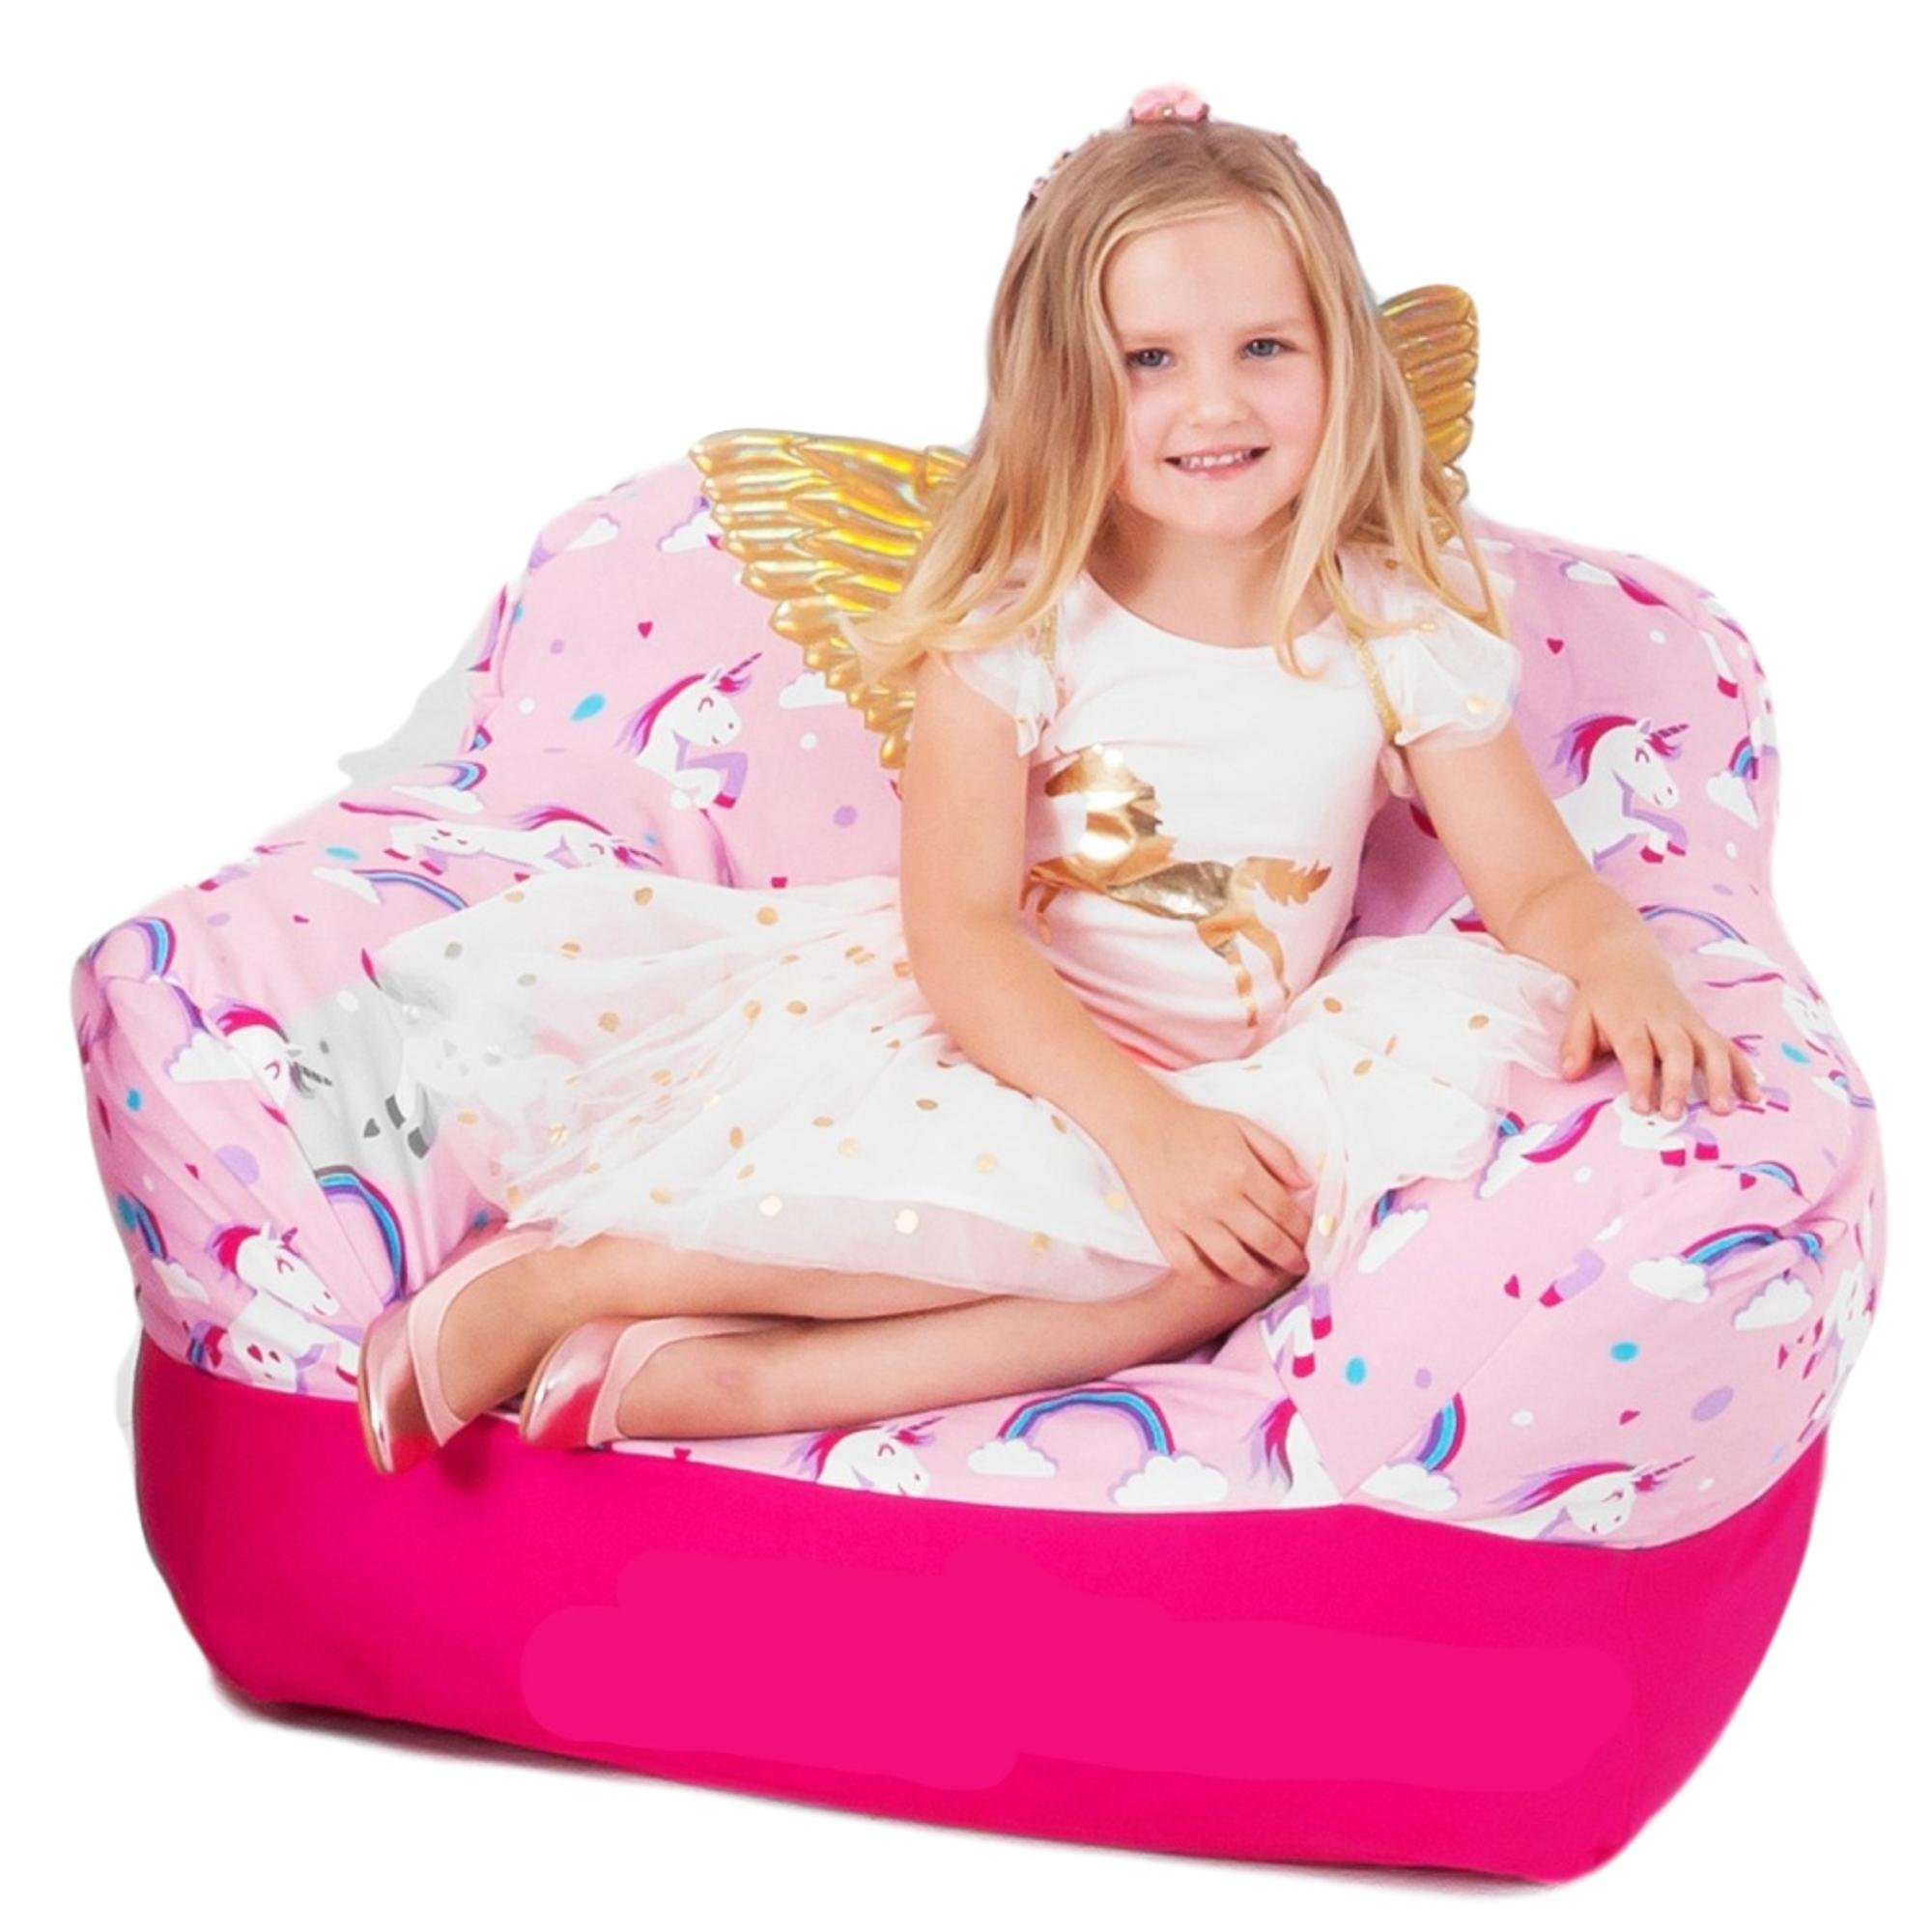 Yayme! Toddler Bean Bag Chair Big Sofa | Bright Pink Unicorn Beanbag with Soft Pure Breathable Cotton Double Beanbag Cover for Children Kids | Bedroom Furniture for Girls